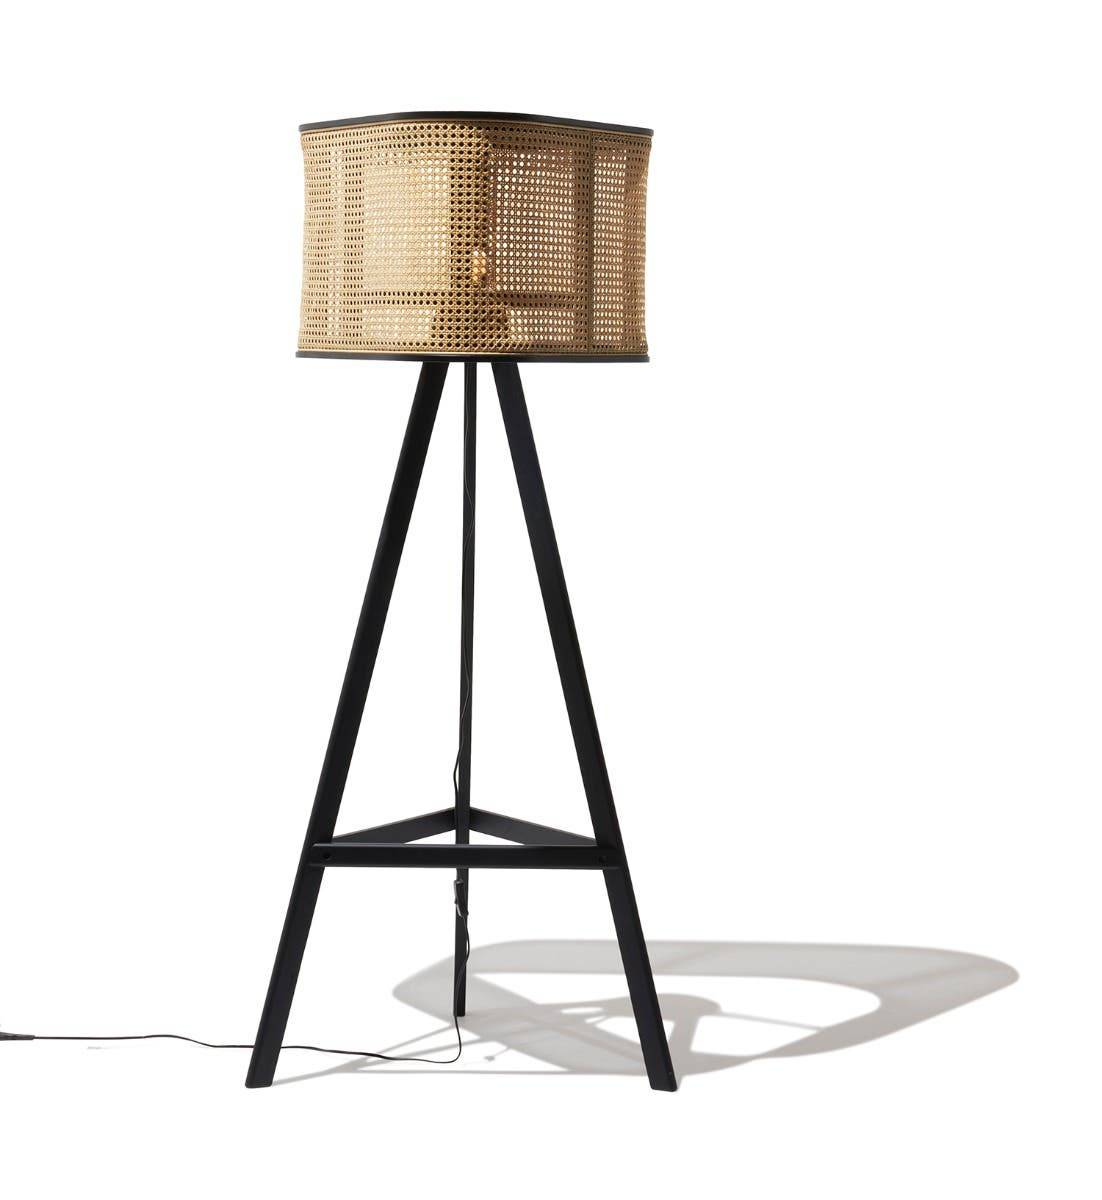 Industry West Cane Floor Lamp Natural